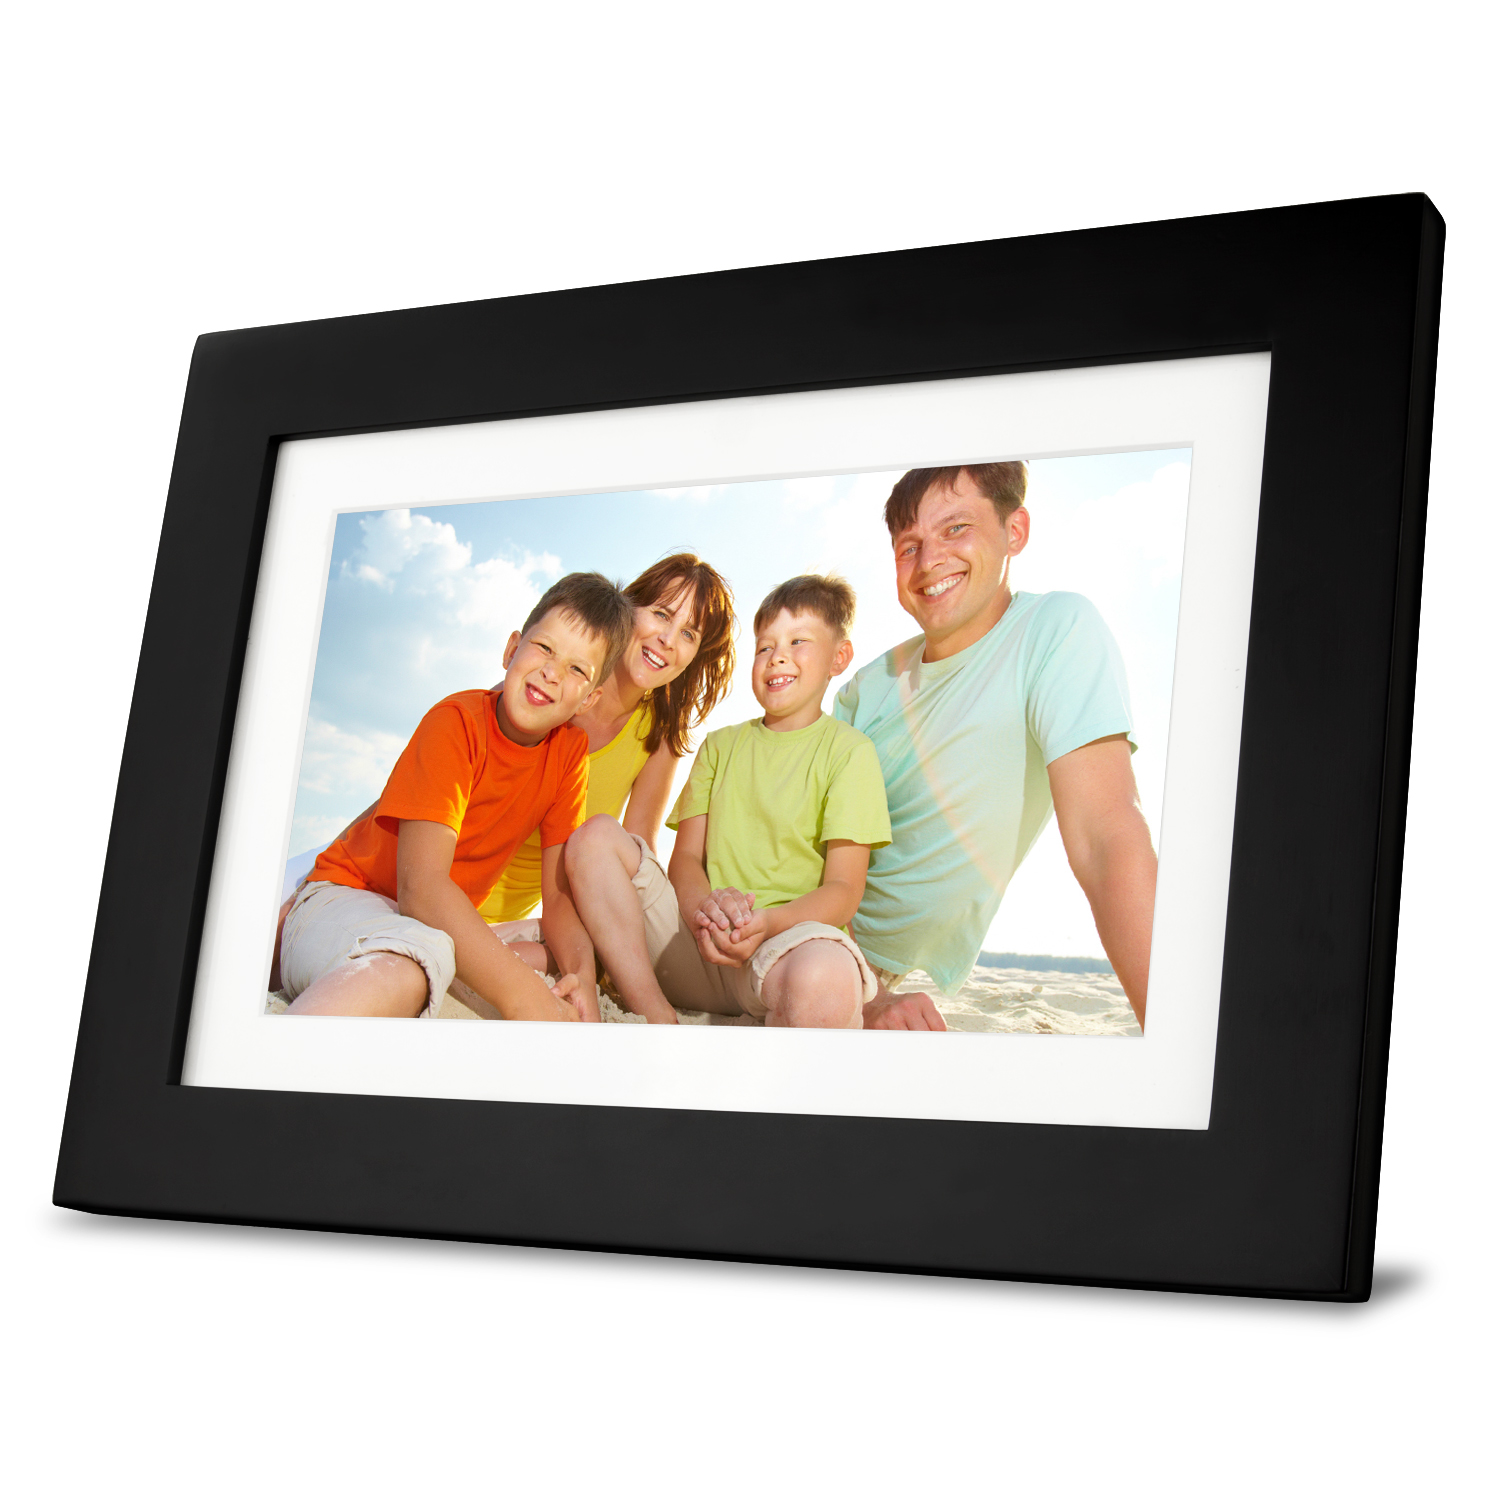 Kmart Digital Photo Frame Viewsonic 10 1 Quot Digital Photo Frame 128mb 1024x600 Tvs